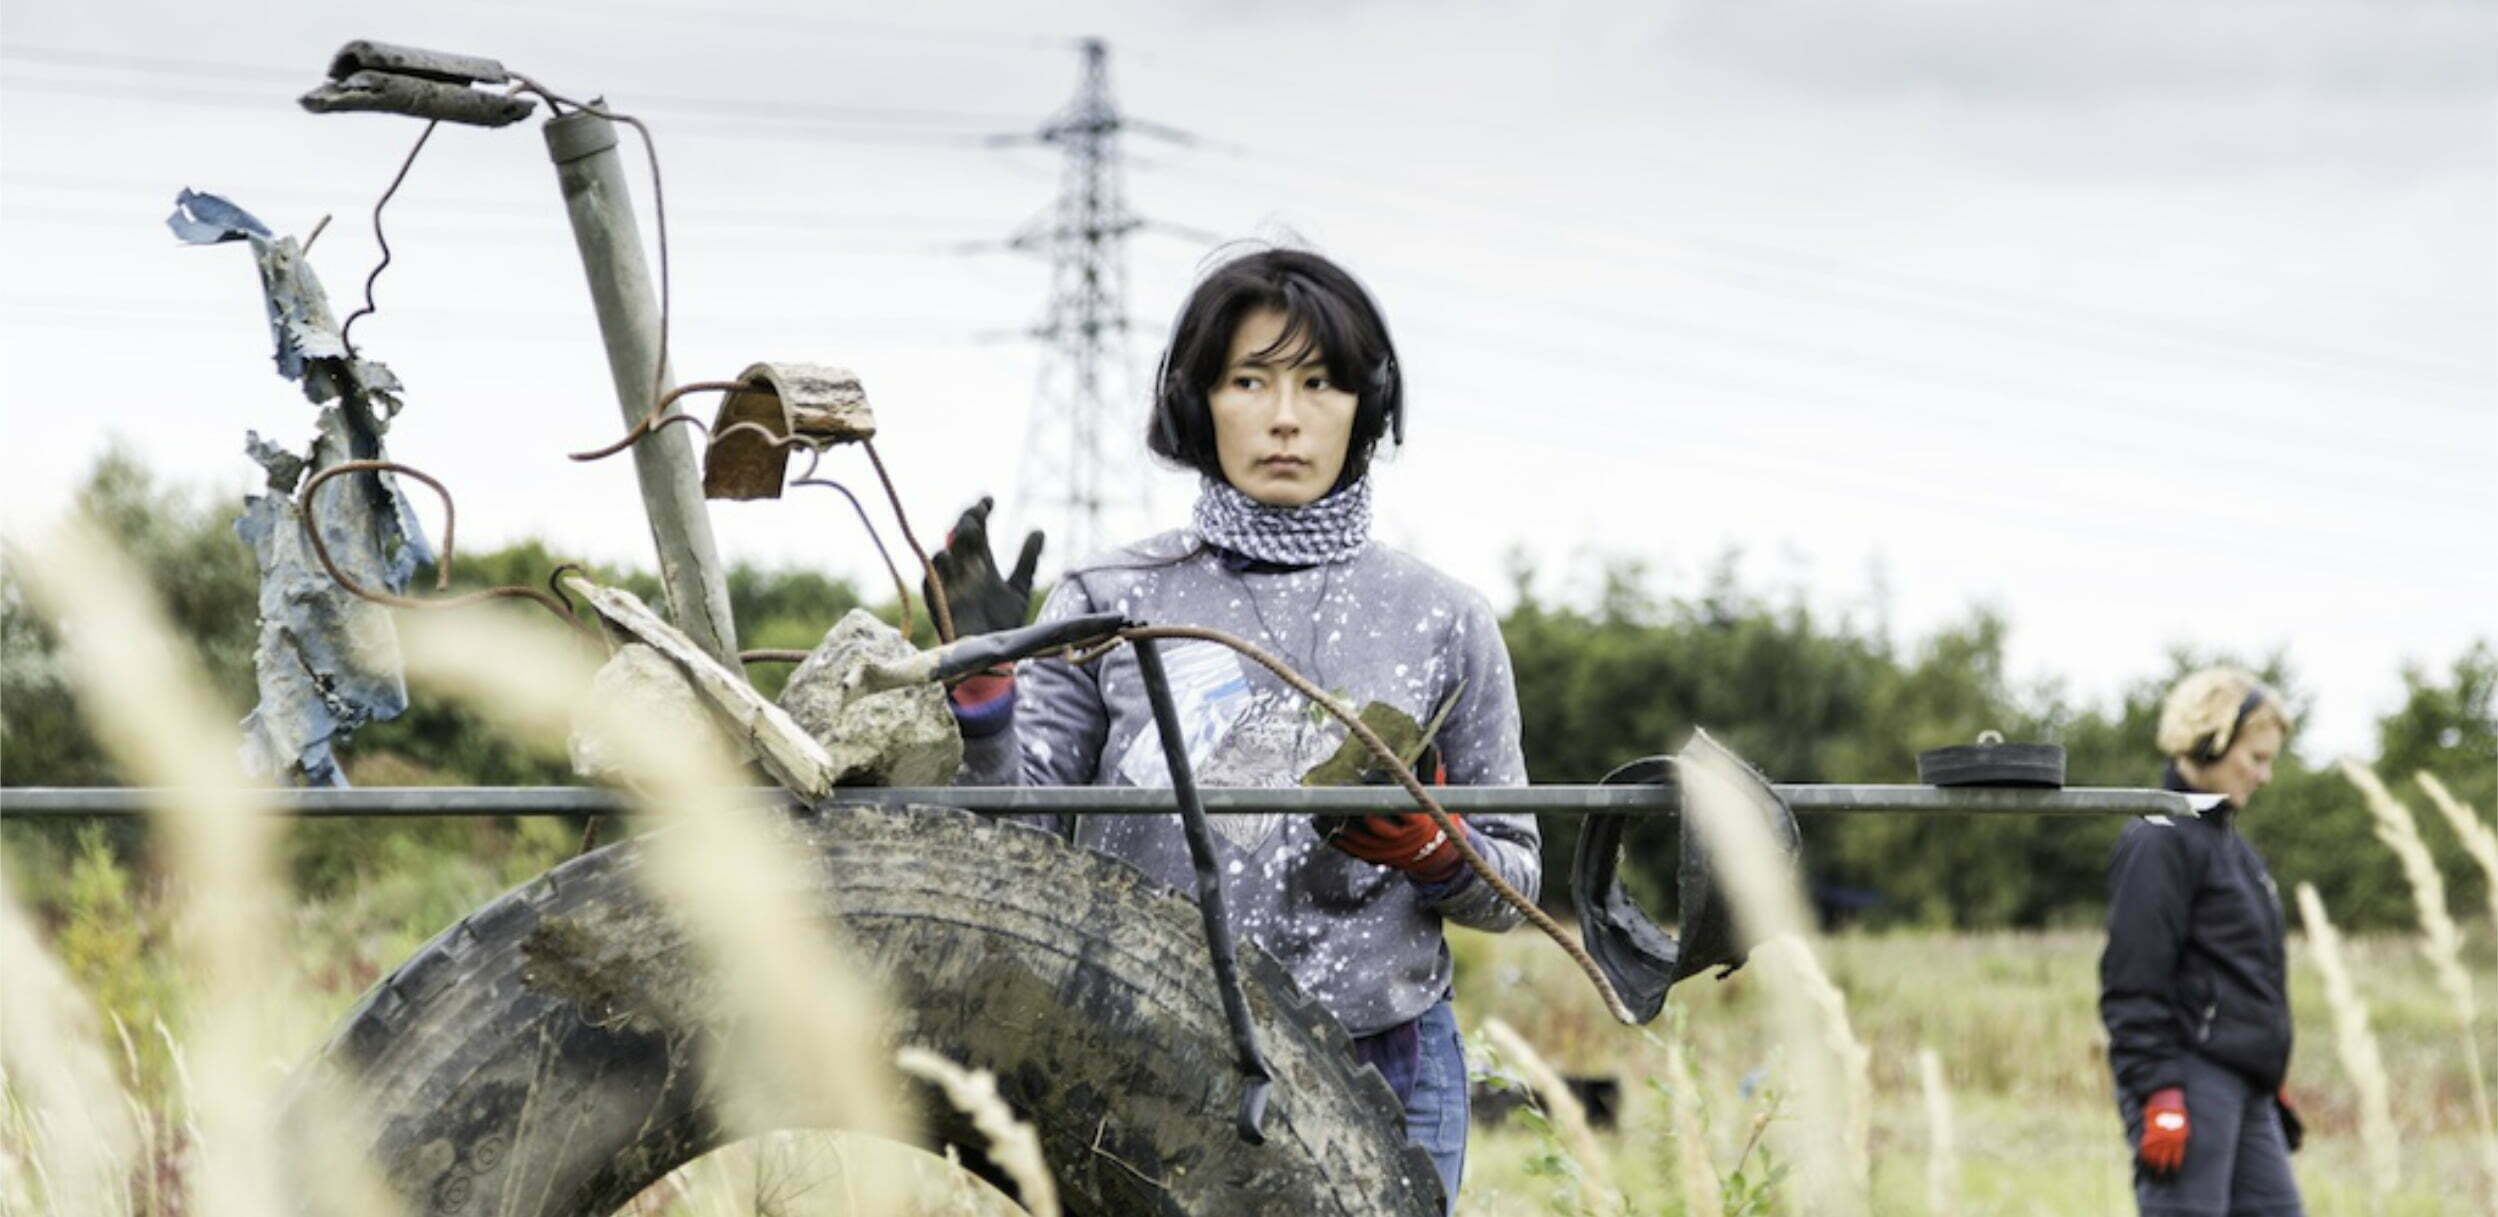 Image description: In a field, a woman wearing warm clothes, headphones and red work gloves stands facing us, one hand raised, her gaze focused to the side. Further back, another woman, also wearing headphones and gloves, walks out of the image to the right. In the foreground is a sculptural assemblage of an old car tyre, pipes and wires. In the far distance, there is a row of trees and a pylon.